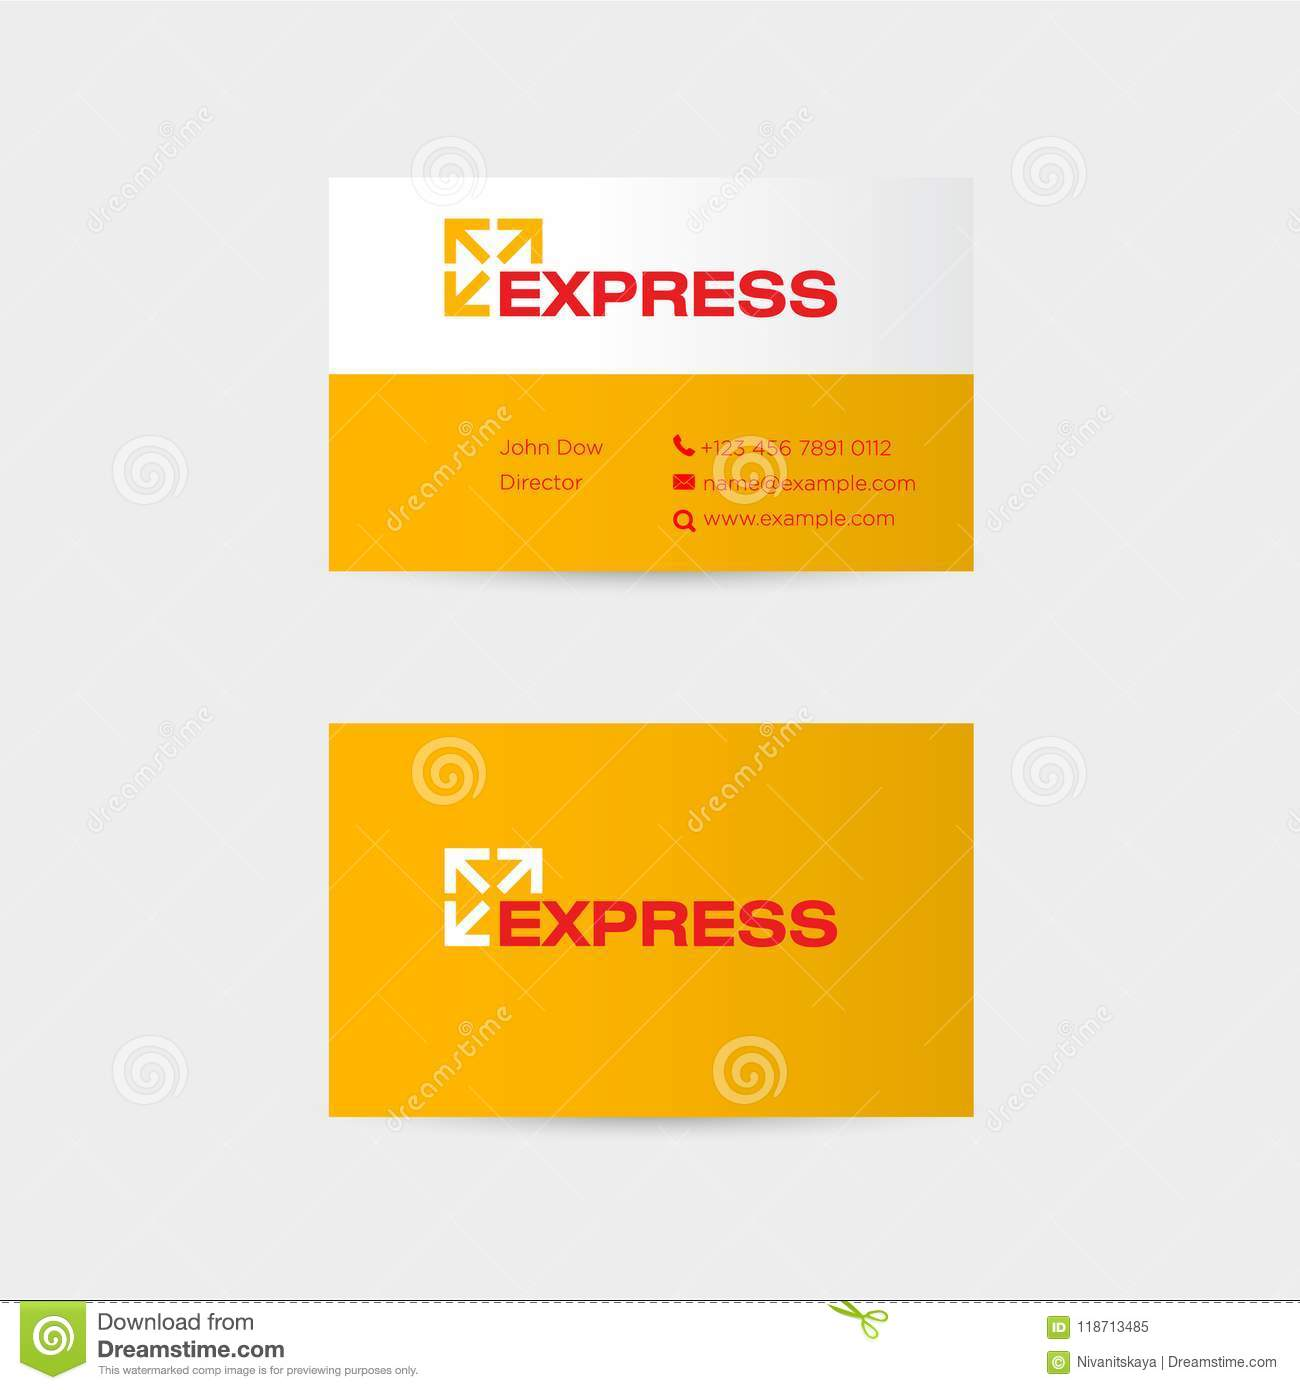 Delivery logo express logo mail parcels logistic emblem logo express logo mail parcels logistic emblem logo with arrows on business card identity reheart Gallery